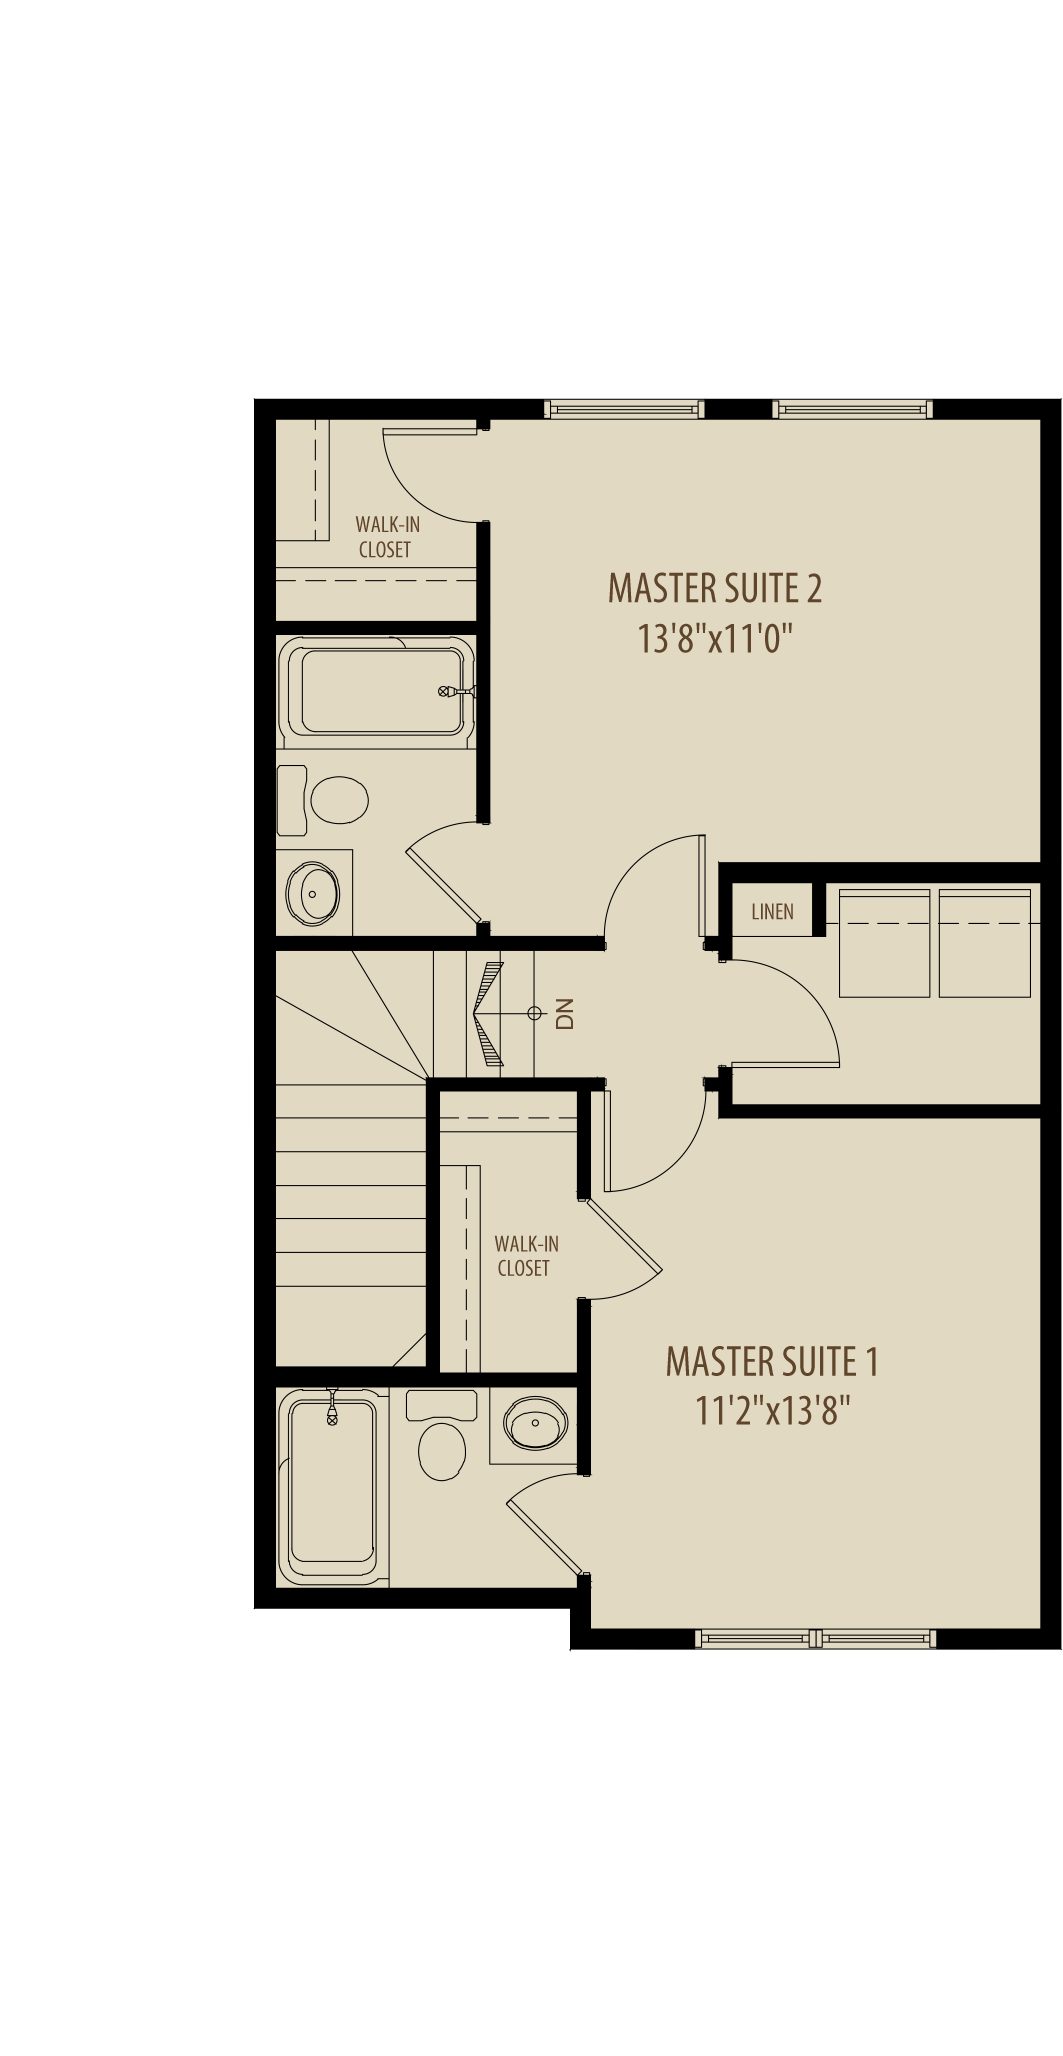 Dual Master Suites W  Laundry Adds 20 Sq Ft